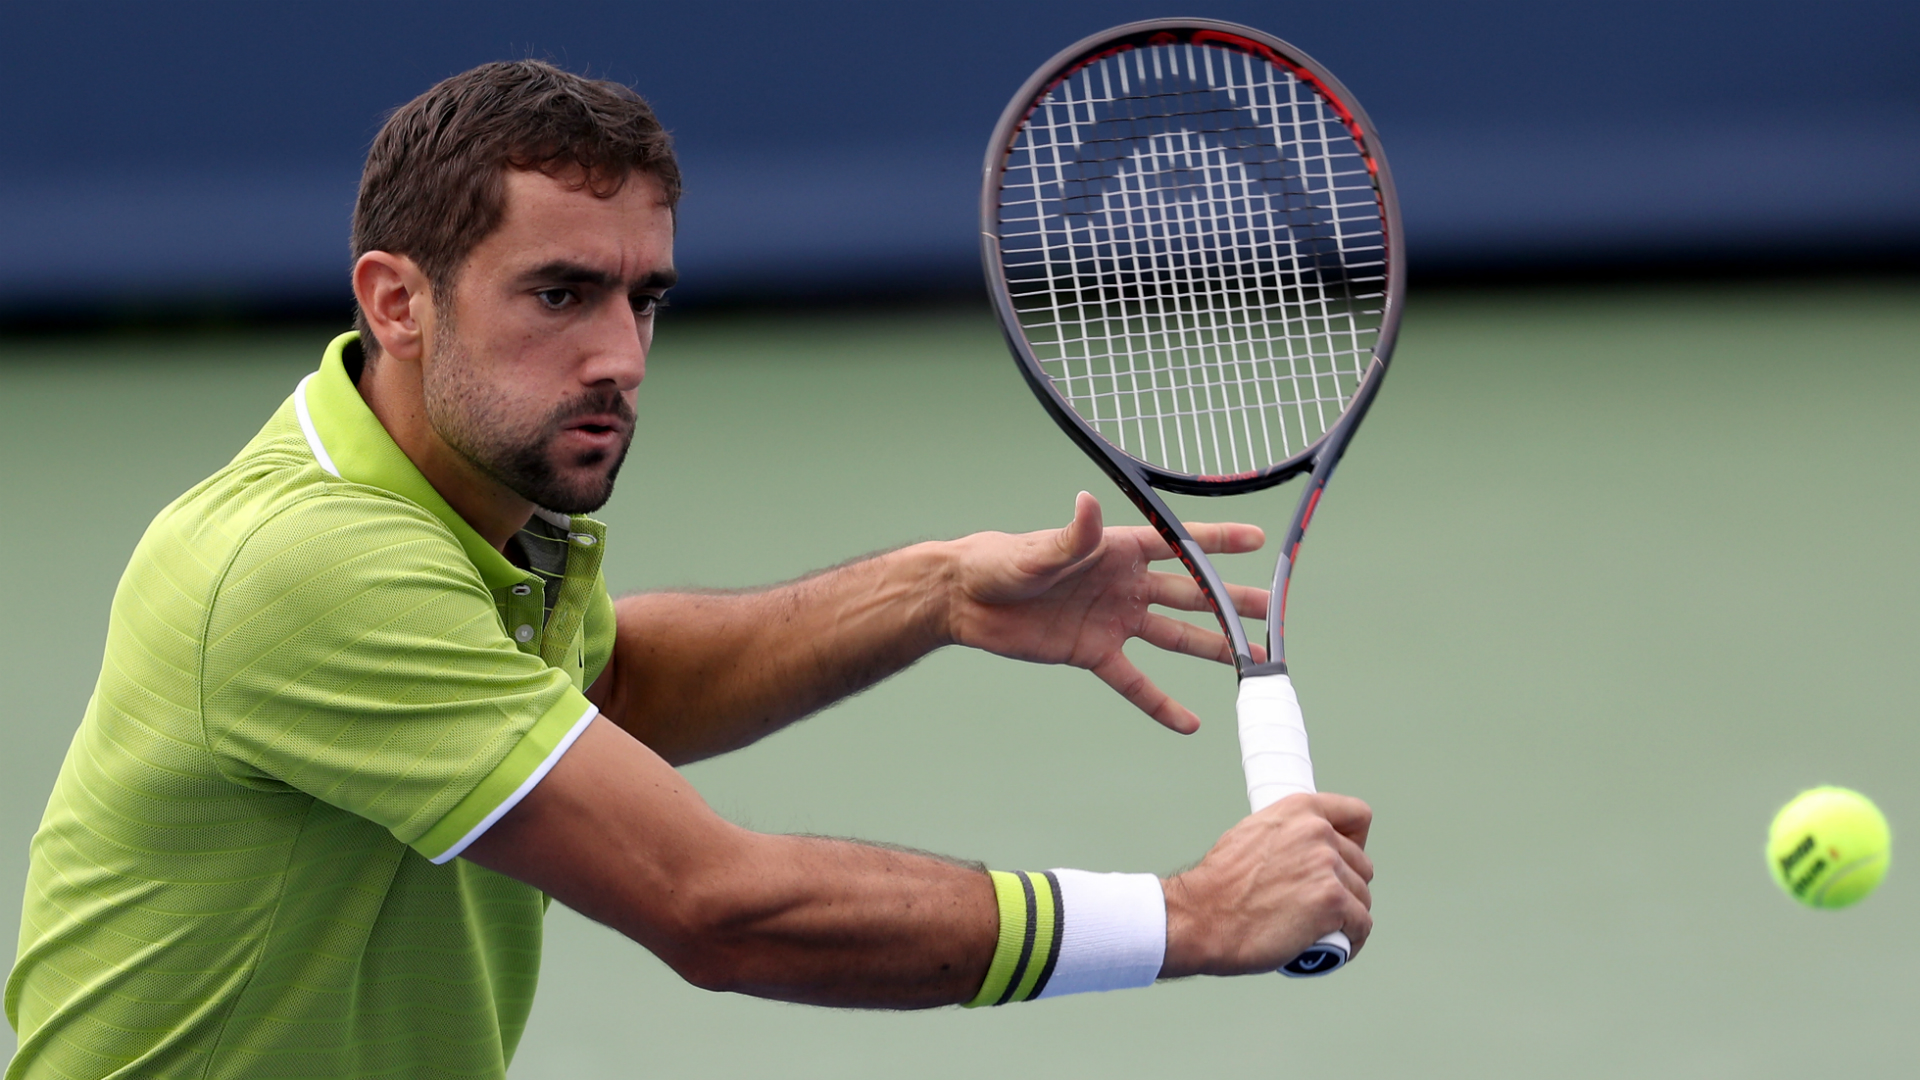 Marin Cilic and Andy Murray both exited the ATP Masters 1000 tournament in Cincinnati on Monday.